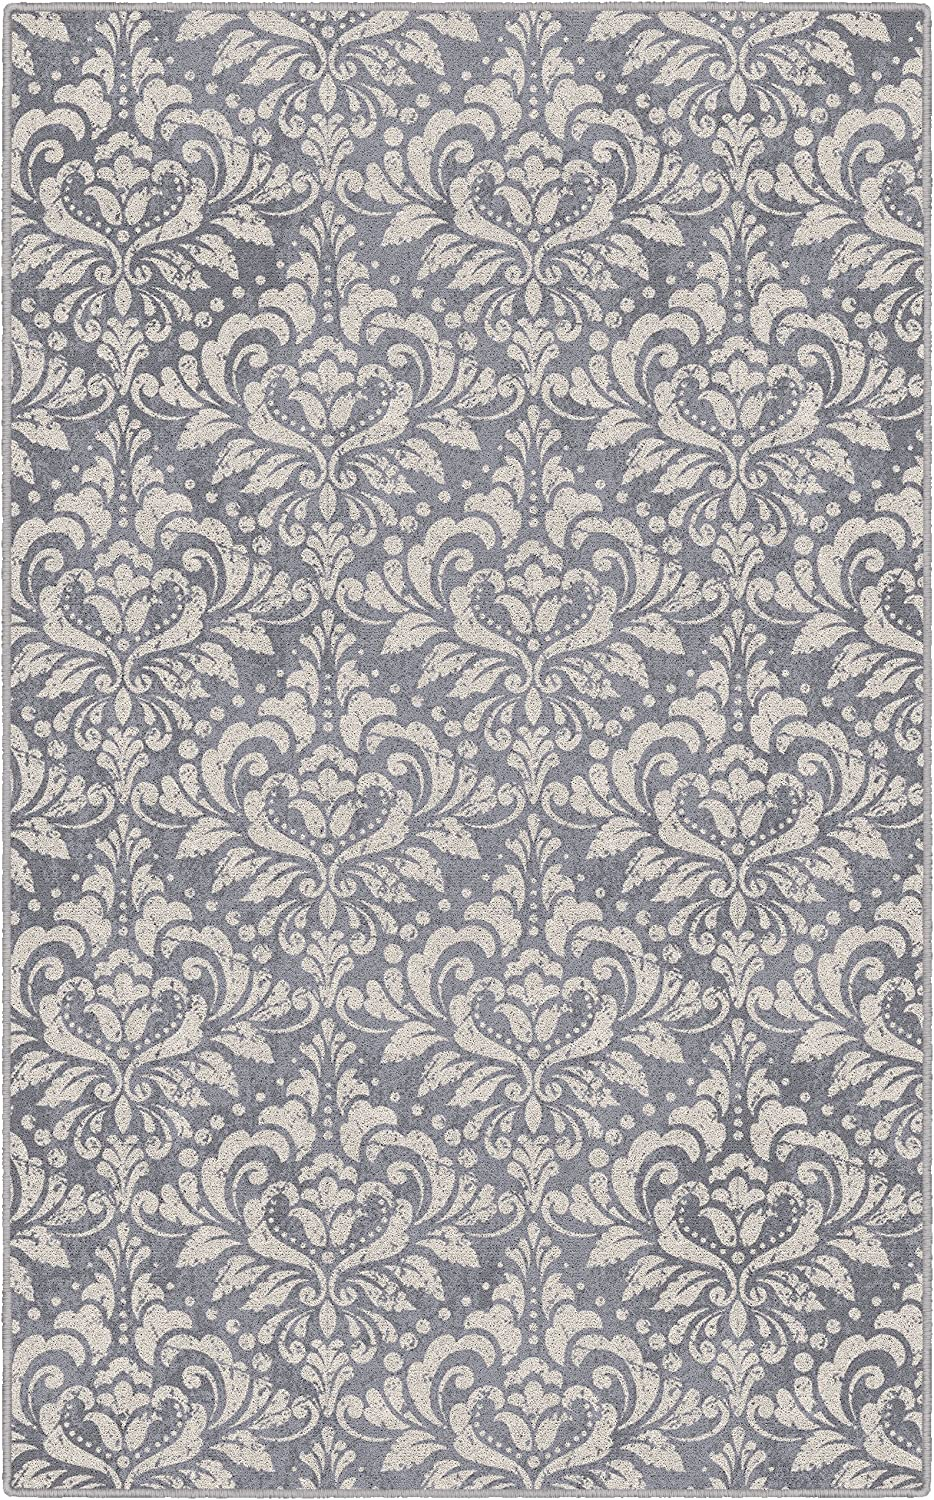 Brumlow Mills Antique Damask In Lilac Floral Pattern Area Rug for Bedroom, Living Room Decor, Dining, Kitchen Mat, or Entryway Rug, 5' x 8', Gray